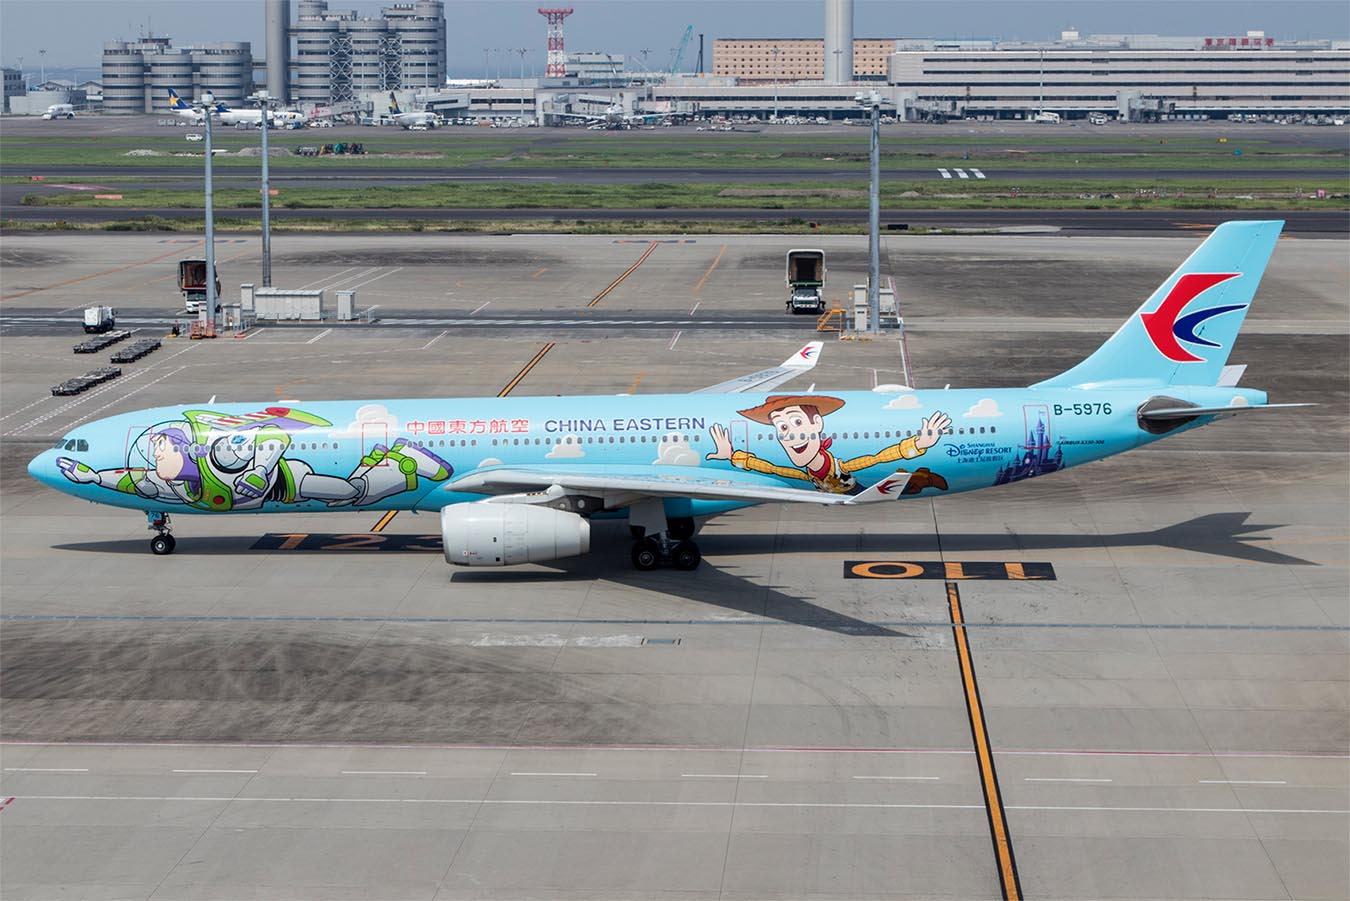 China Eastern A330 Toy Story